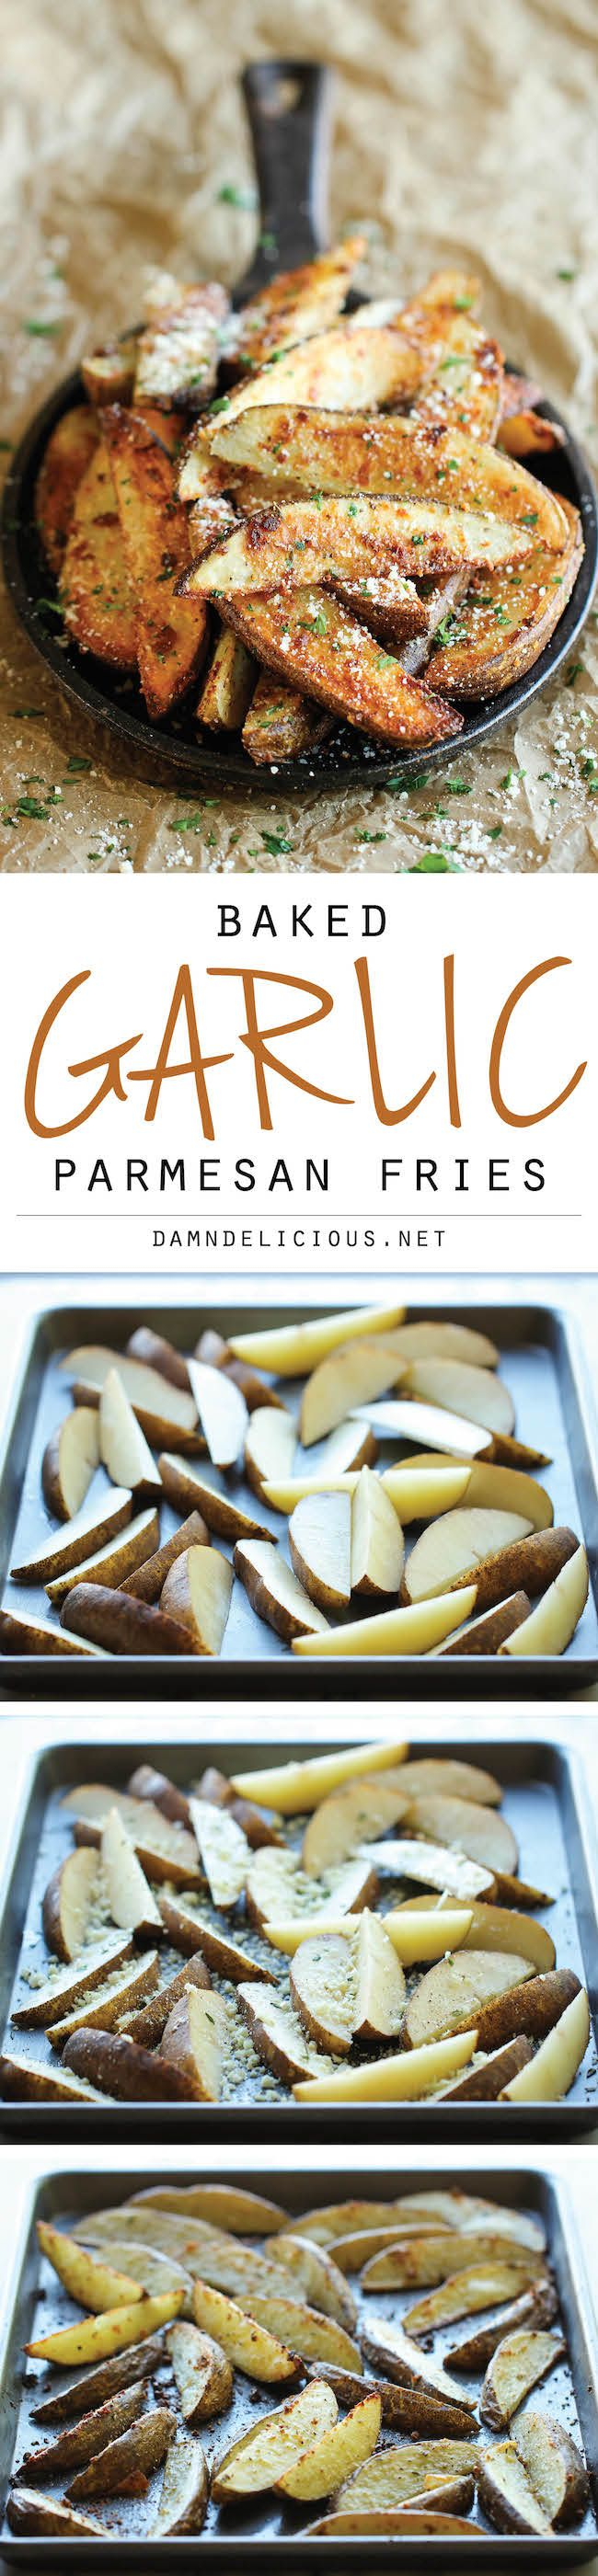 Garlic Parmesan Fries – Amazingly crisp, oven-baked fries coated with freshly grated Parmesan and a generous dose of garlic